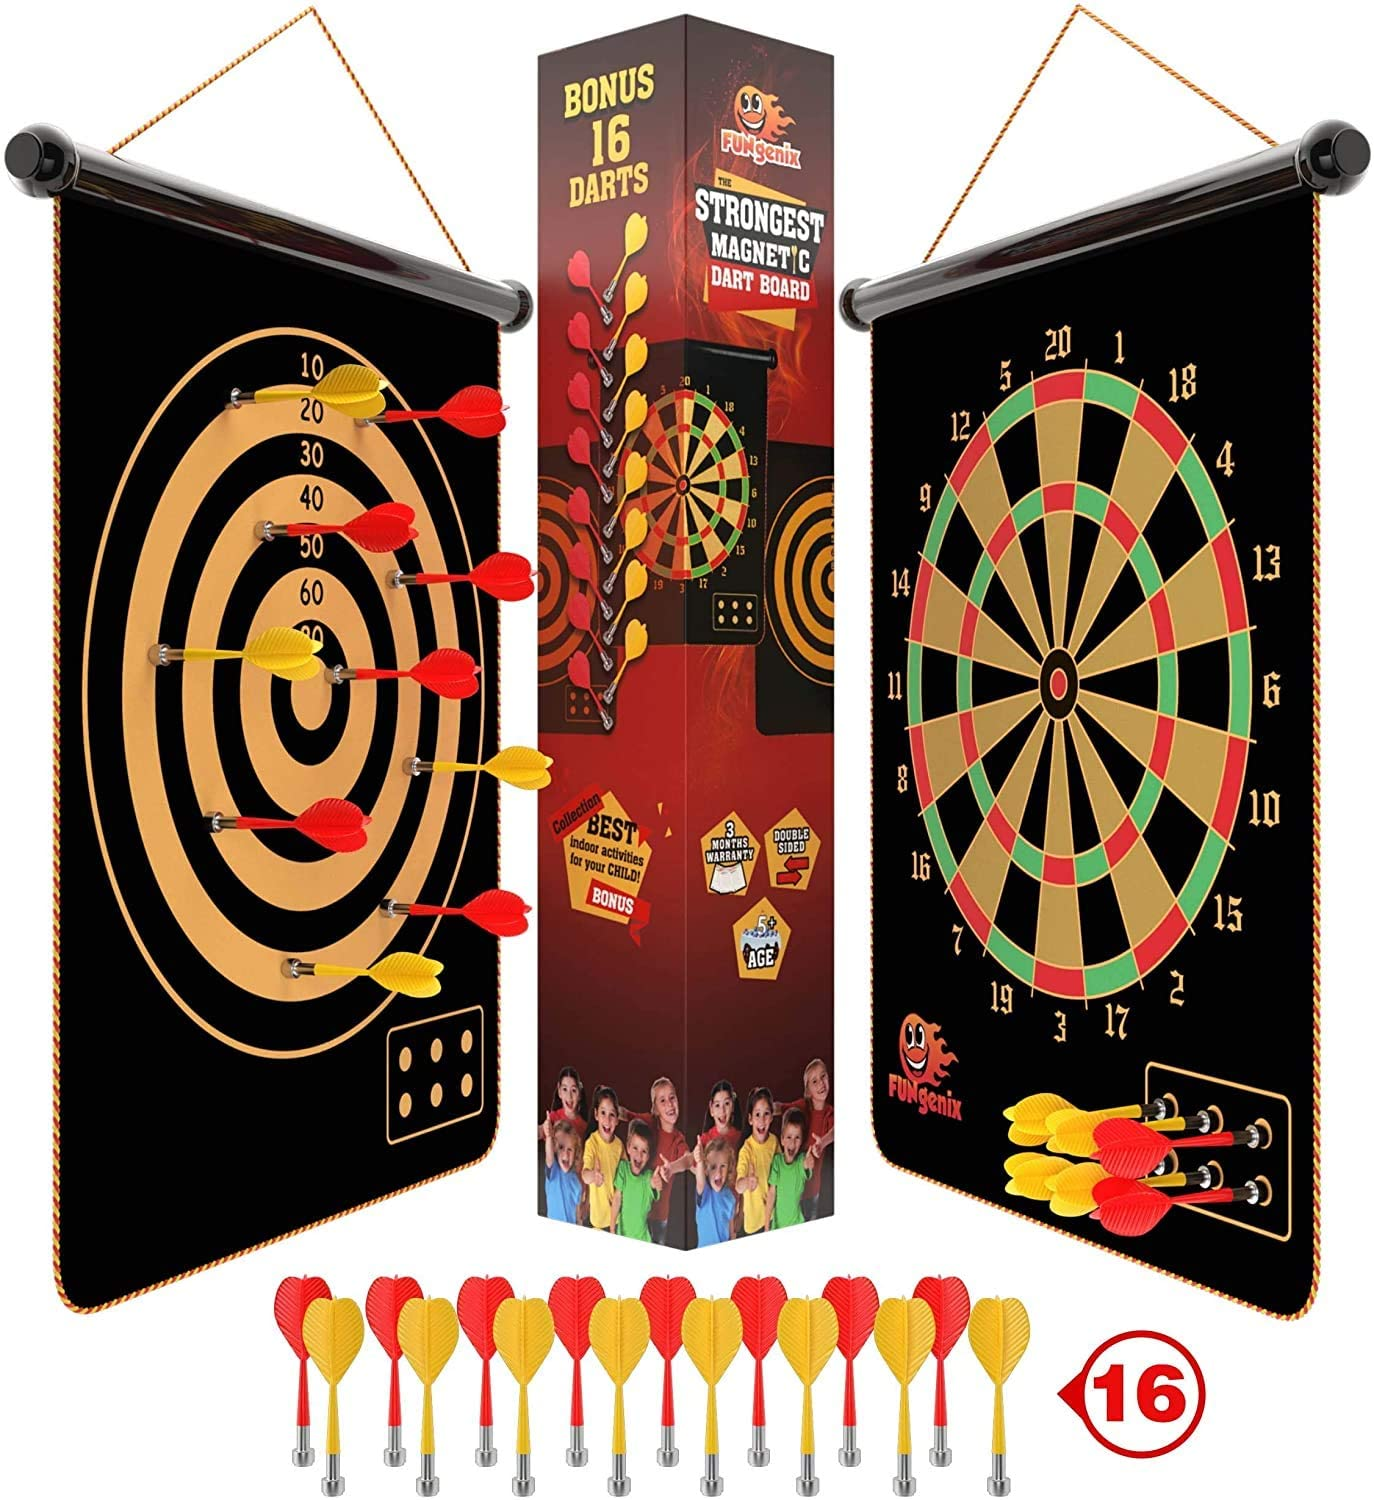 gifts-for-11-year-old-girls-darts